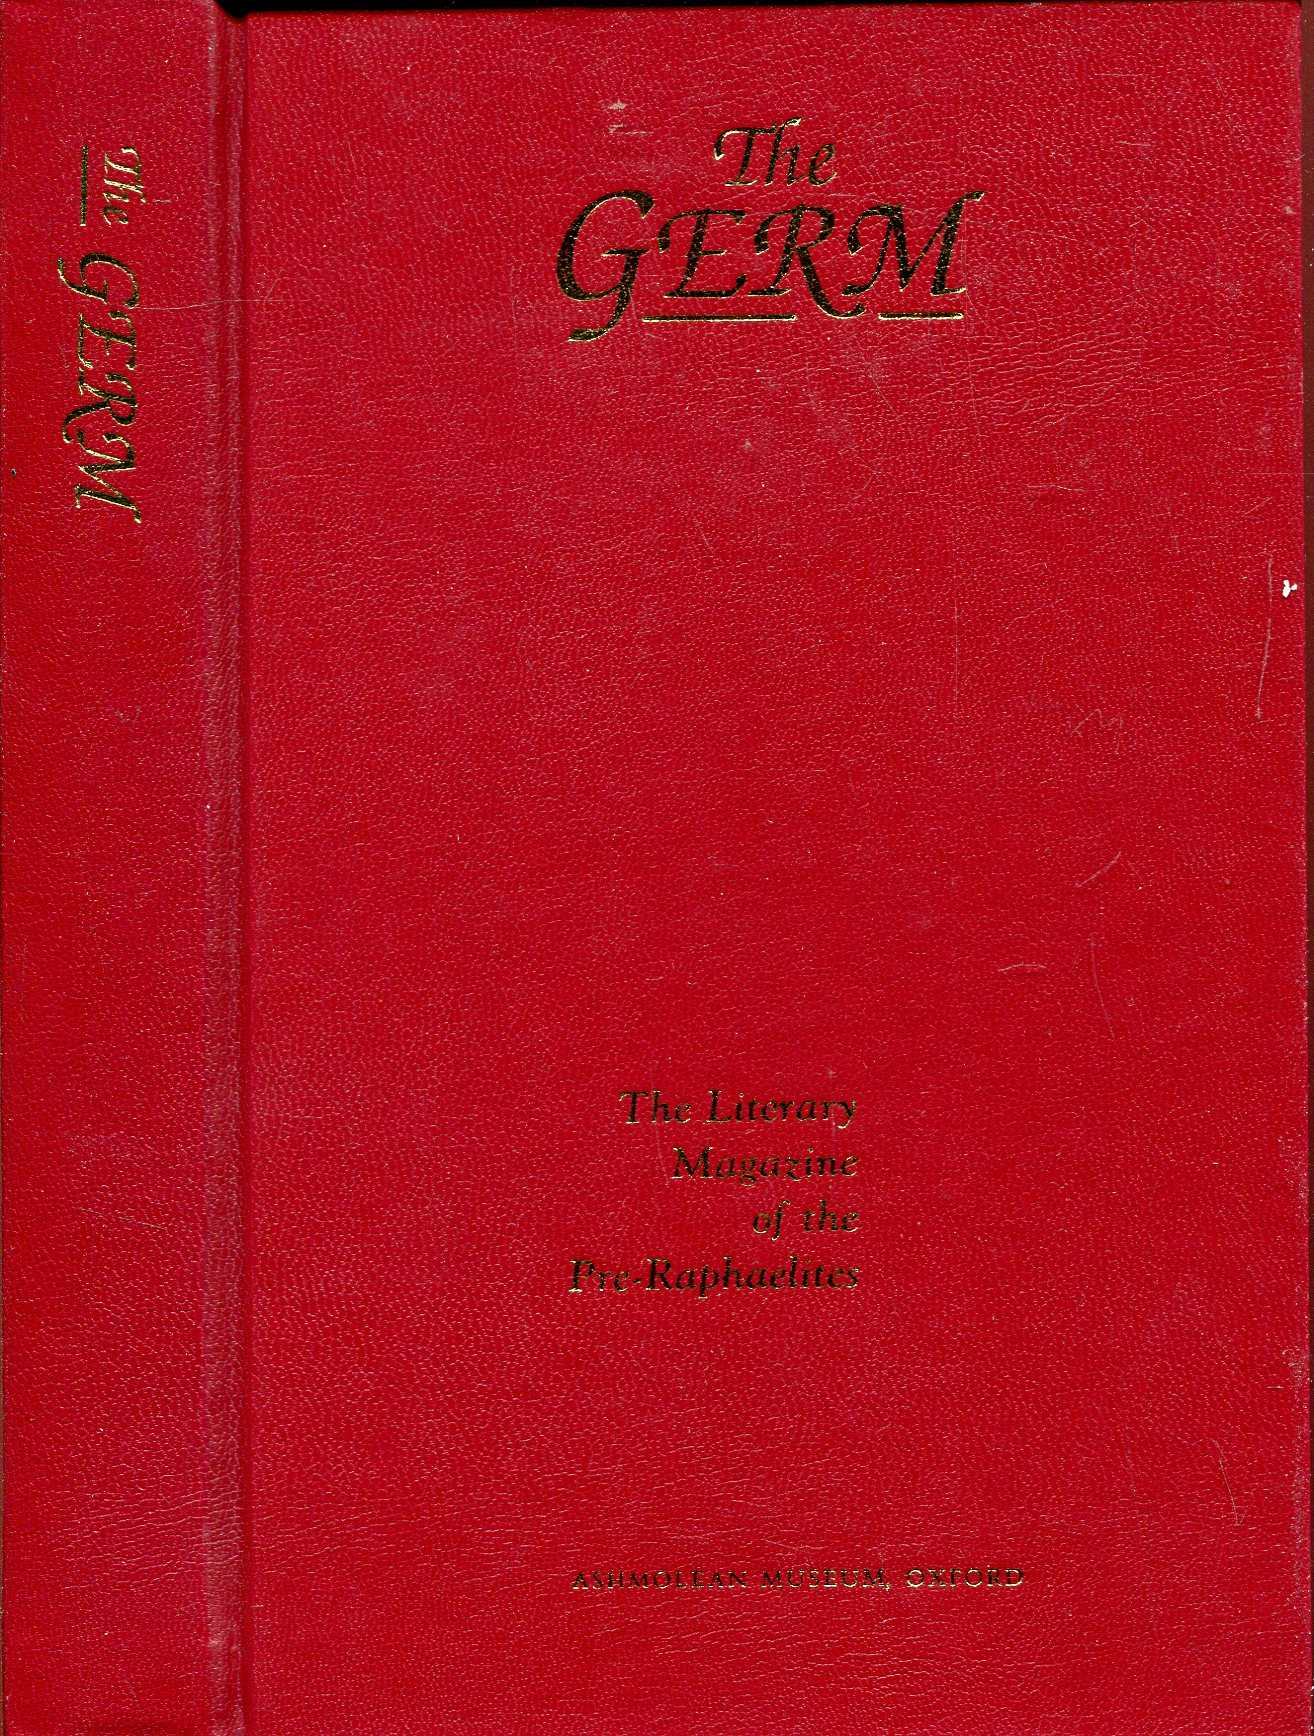 Image for The Germ: The Literary Magazine of the Pre-Raphaelites